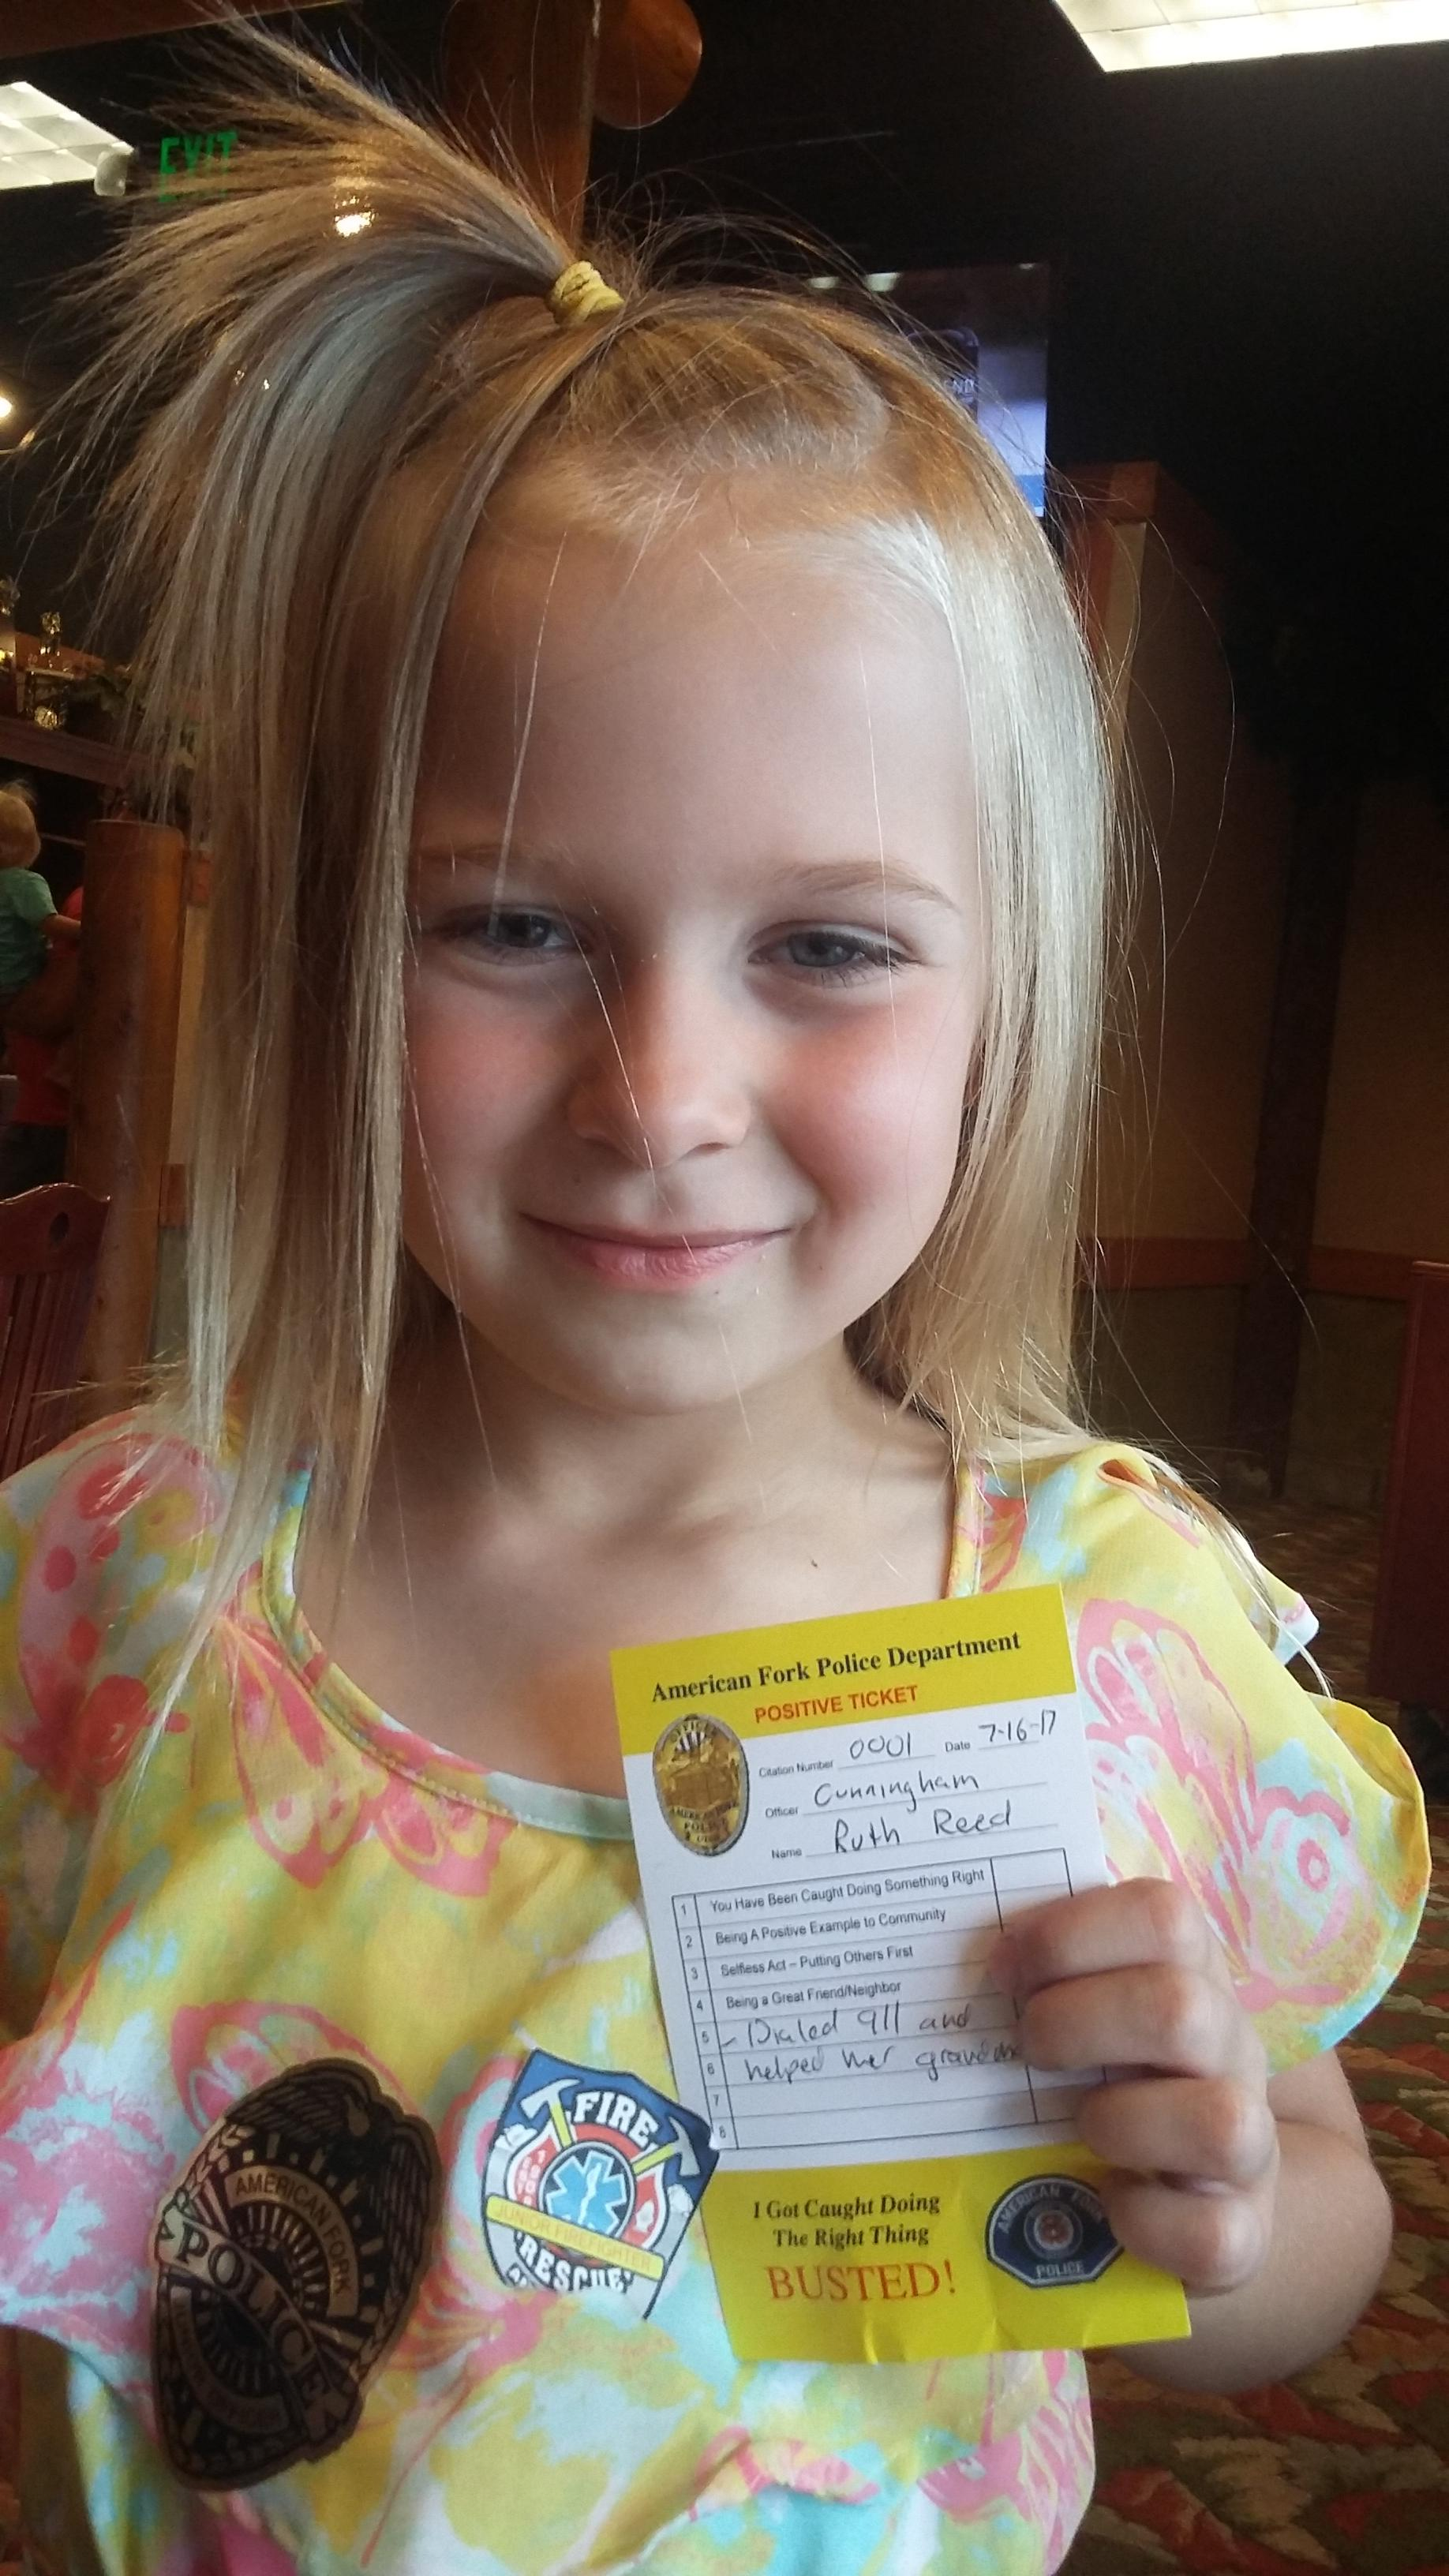 5-year-old girl hailed as hero after saving grandmother's life (Photo: Hannah Knowles / KUTV)